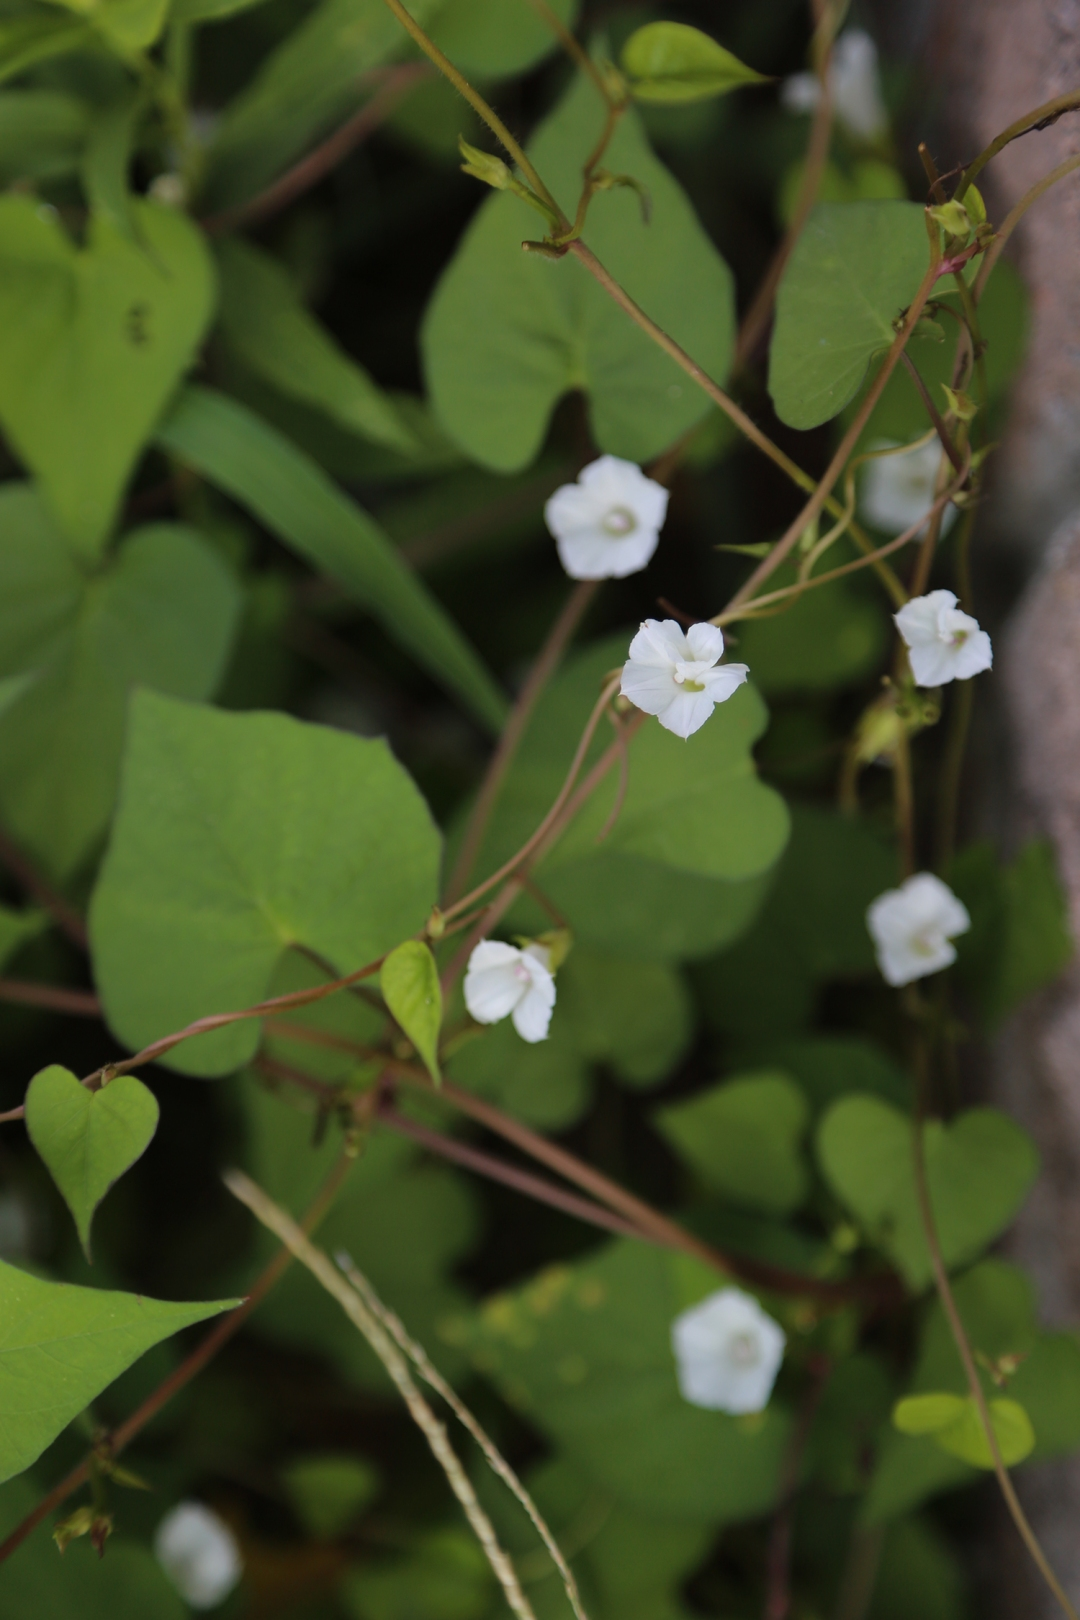 white morning glory blossoms on a vine.